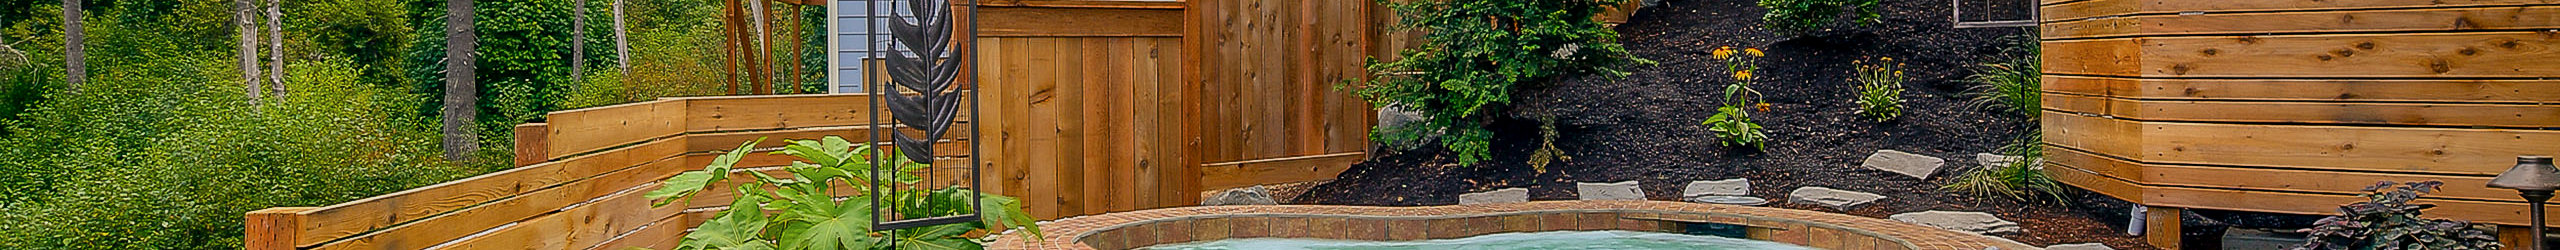 fencing oakville landscaping big